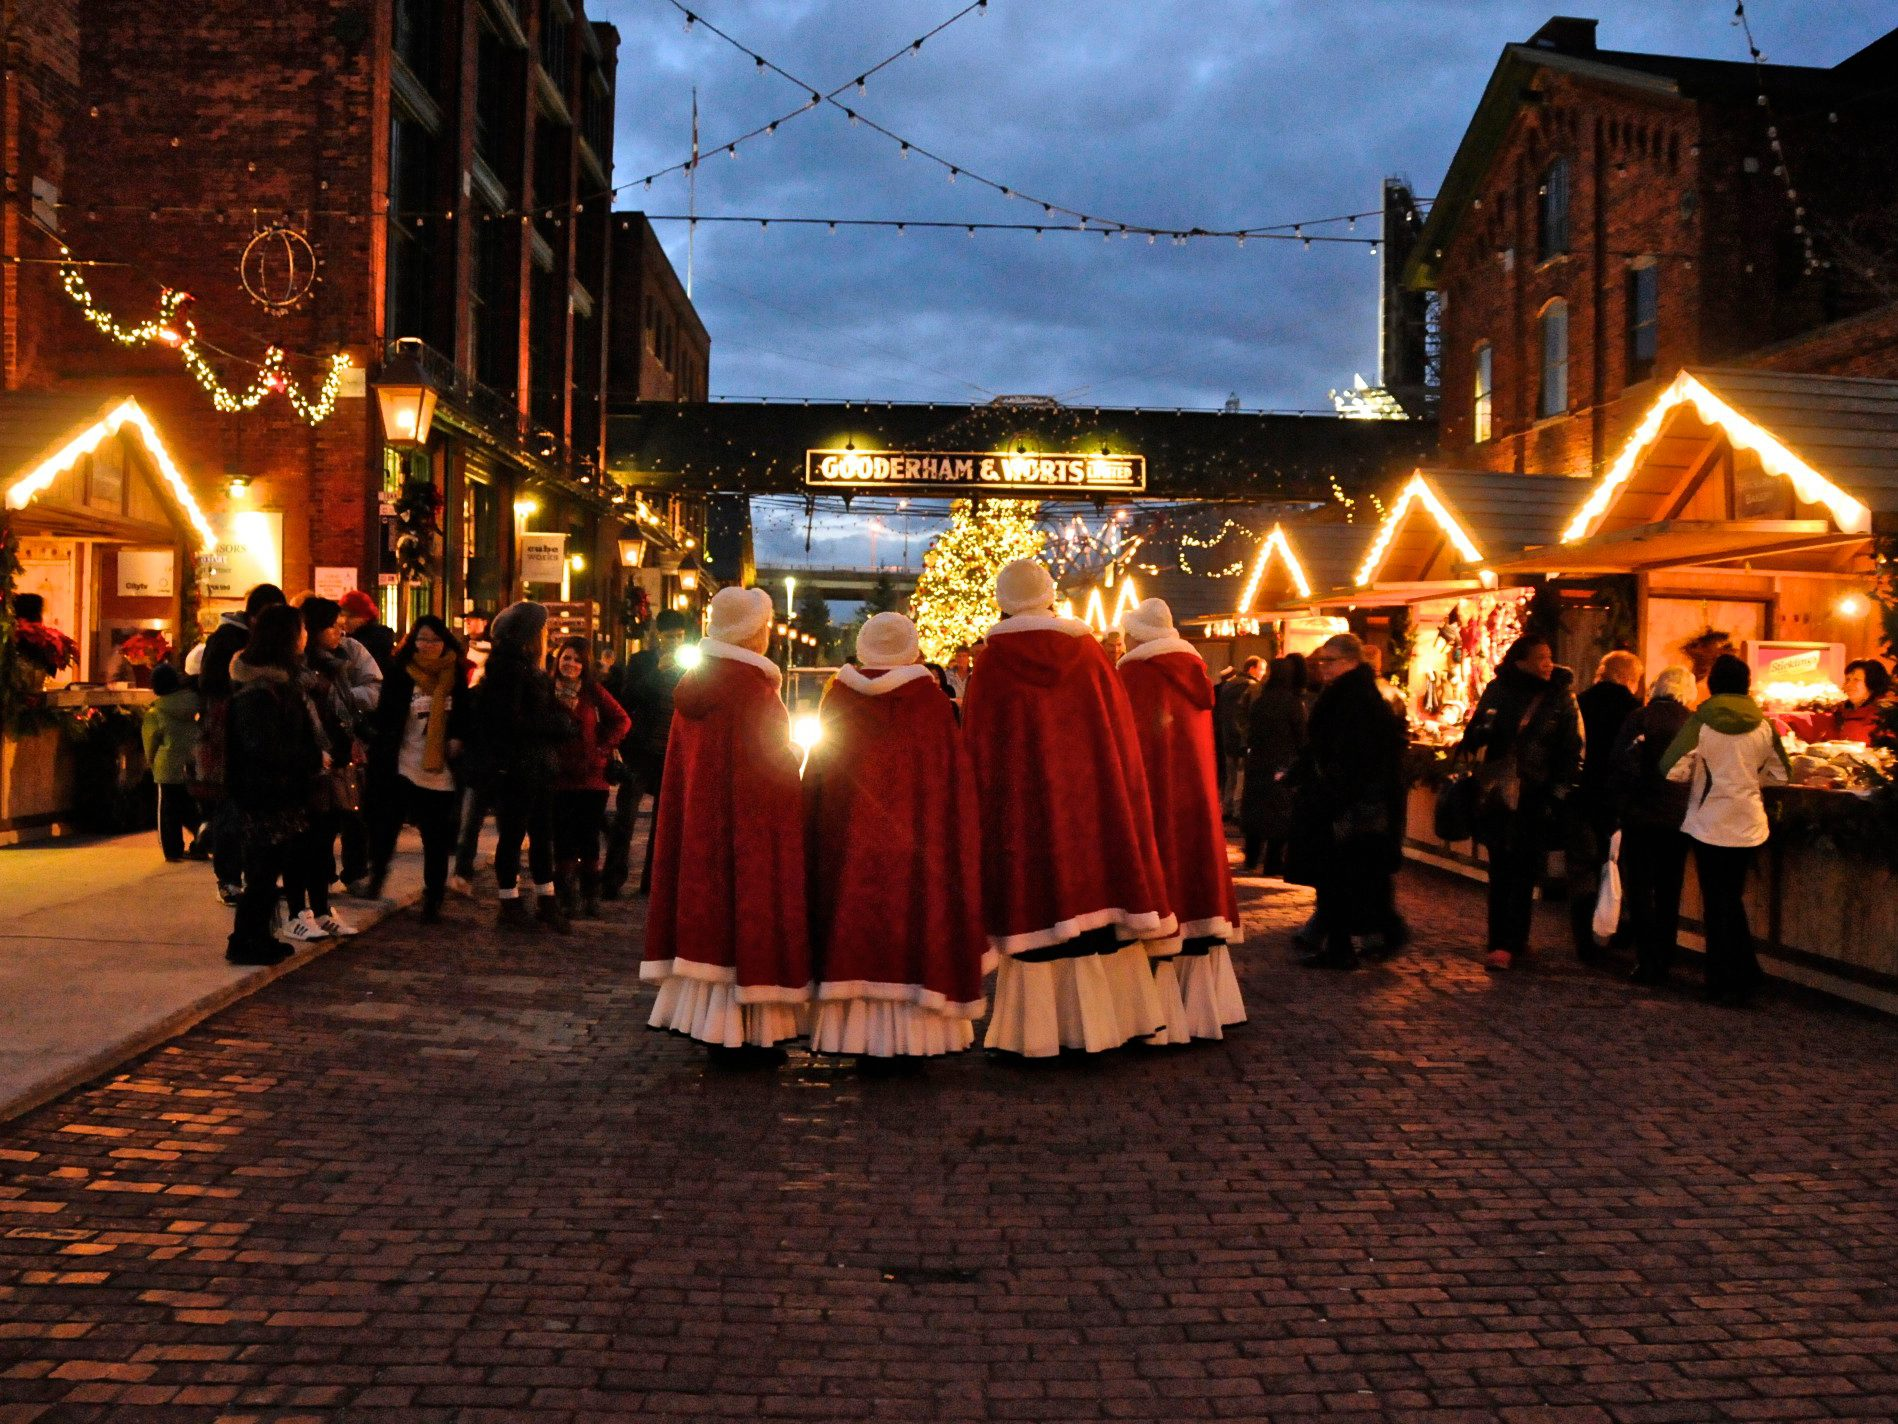 10. The Distillery Historic District Christmas Market